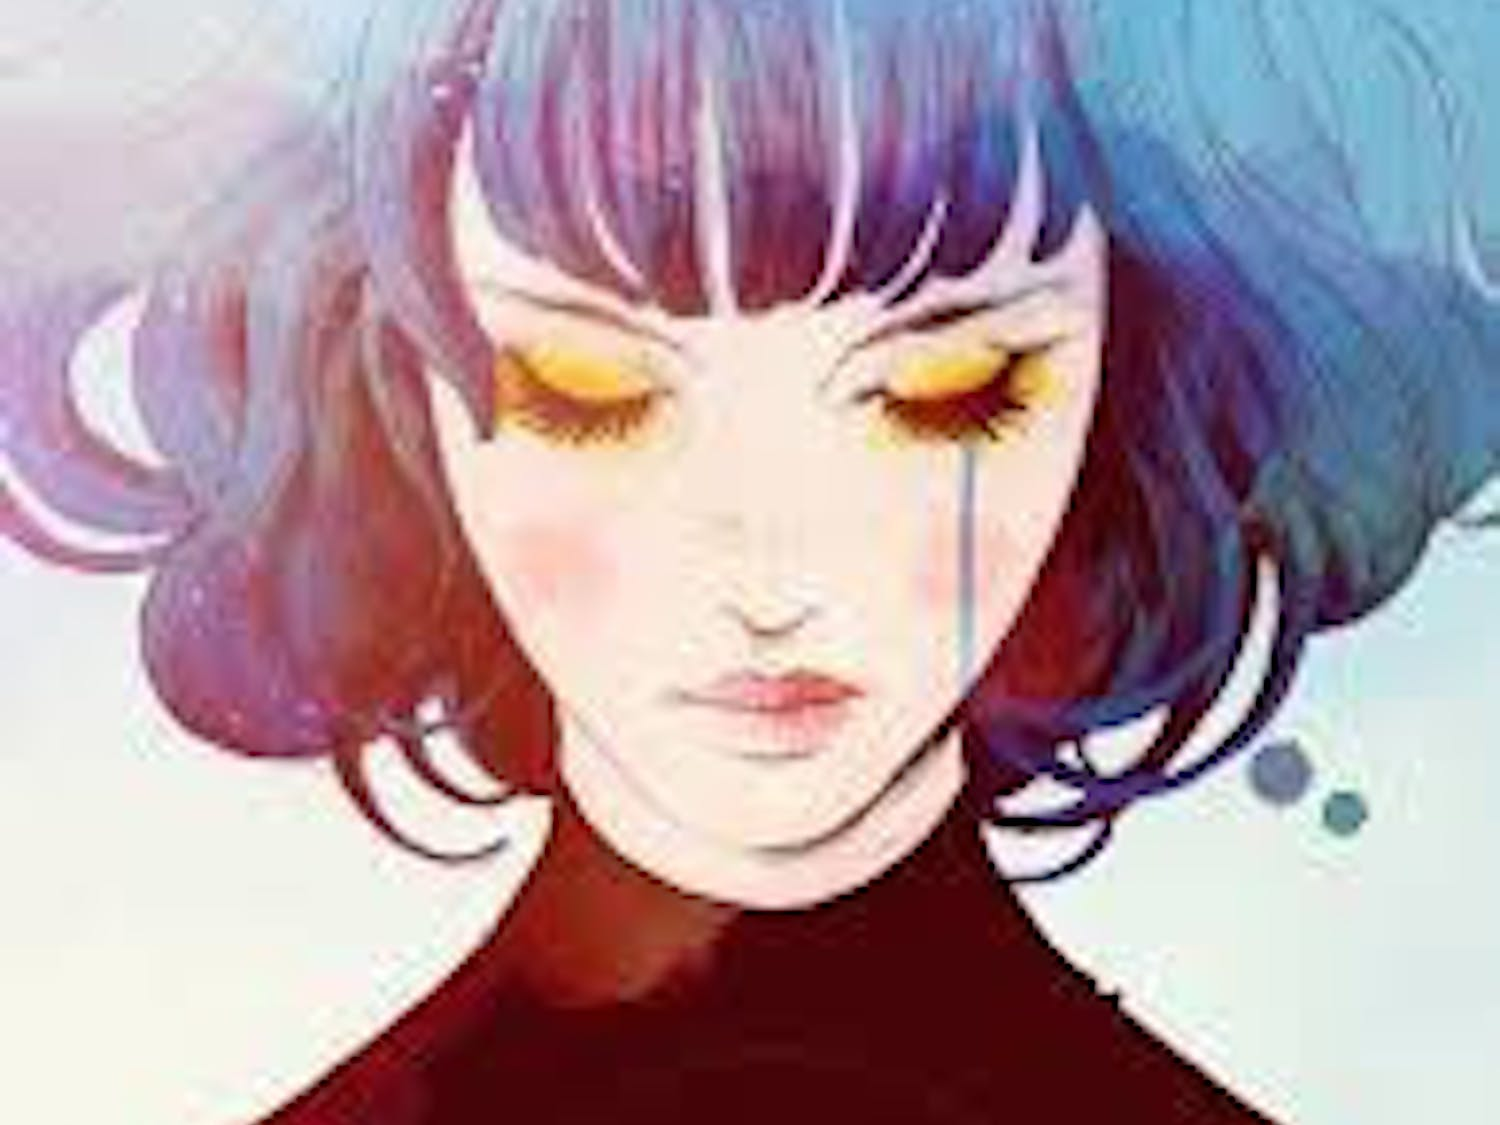 Gris, our third favorite Indie game of 2018, allows players dive into a world of living illustration.